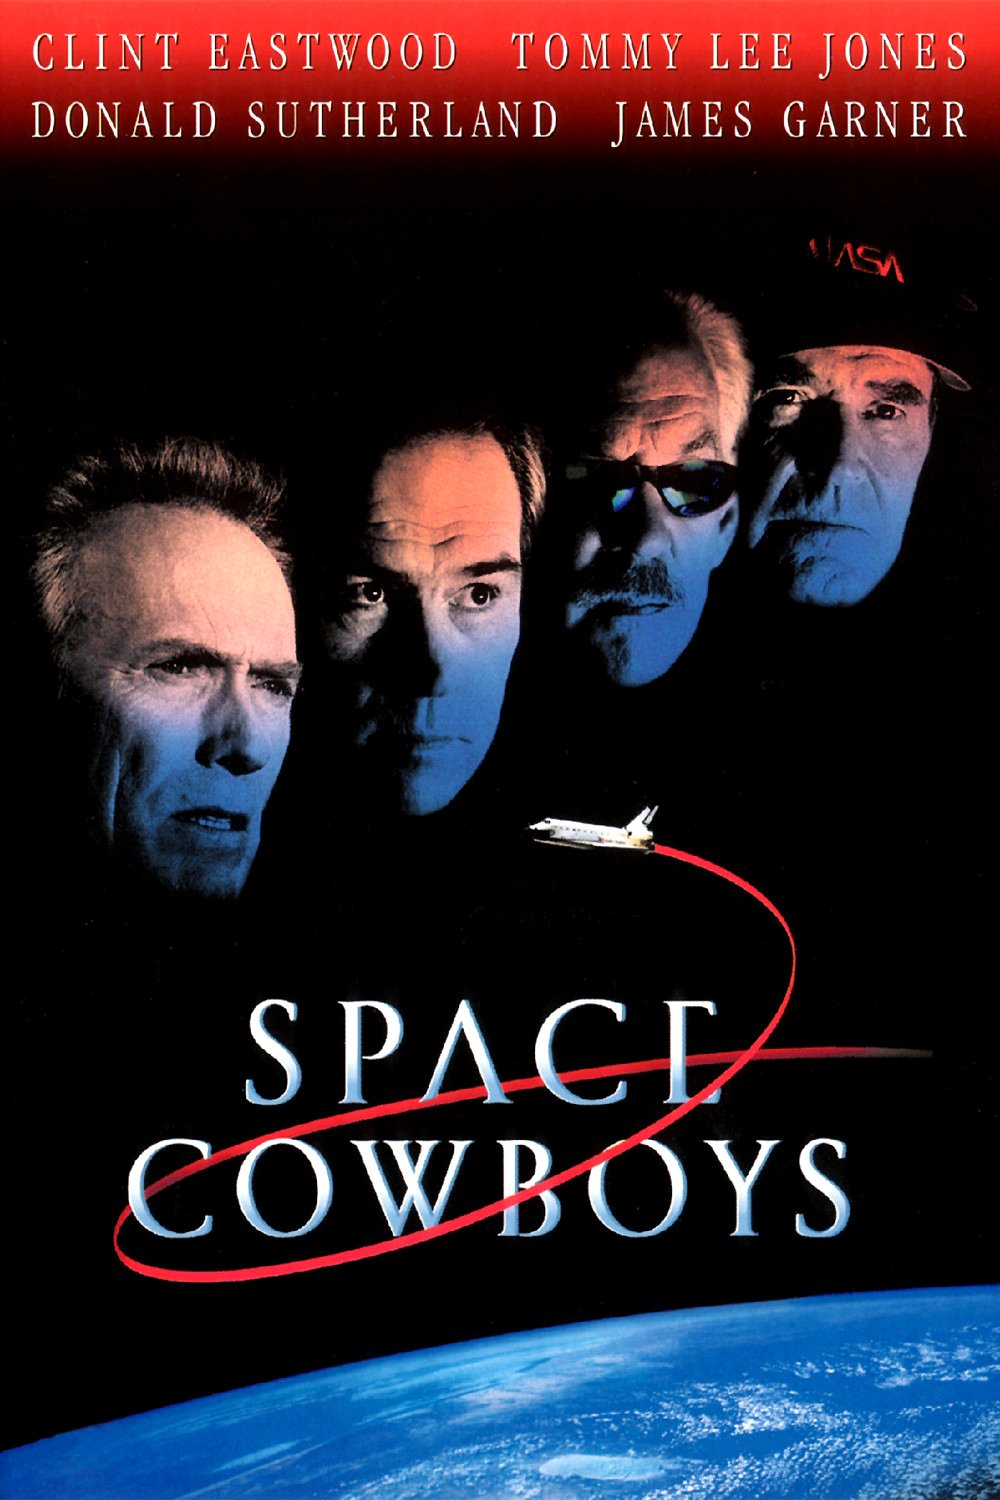 Space Cowboys Movie Poster Google image from http://wp.artemi.us/wp-content/uploads/2011/08/space-cowboys-original.jpg